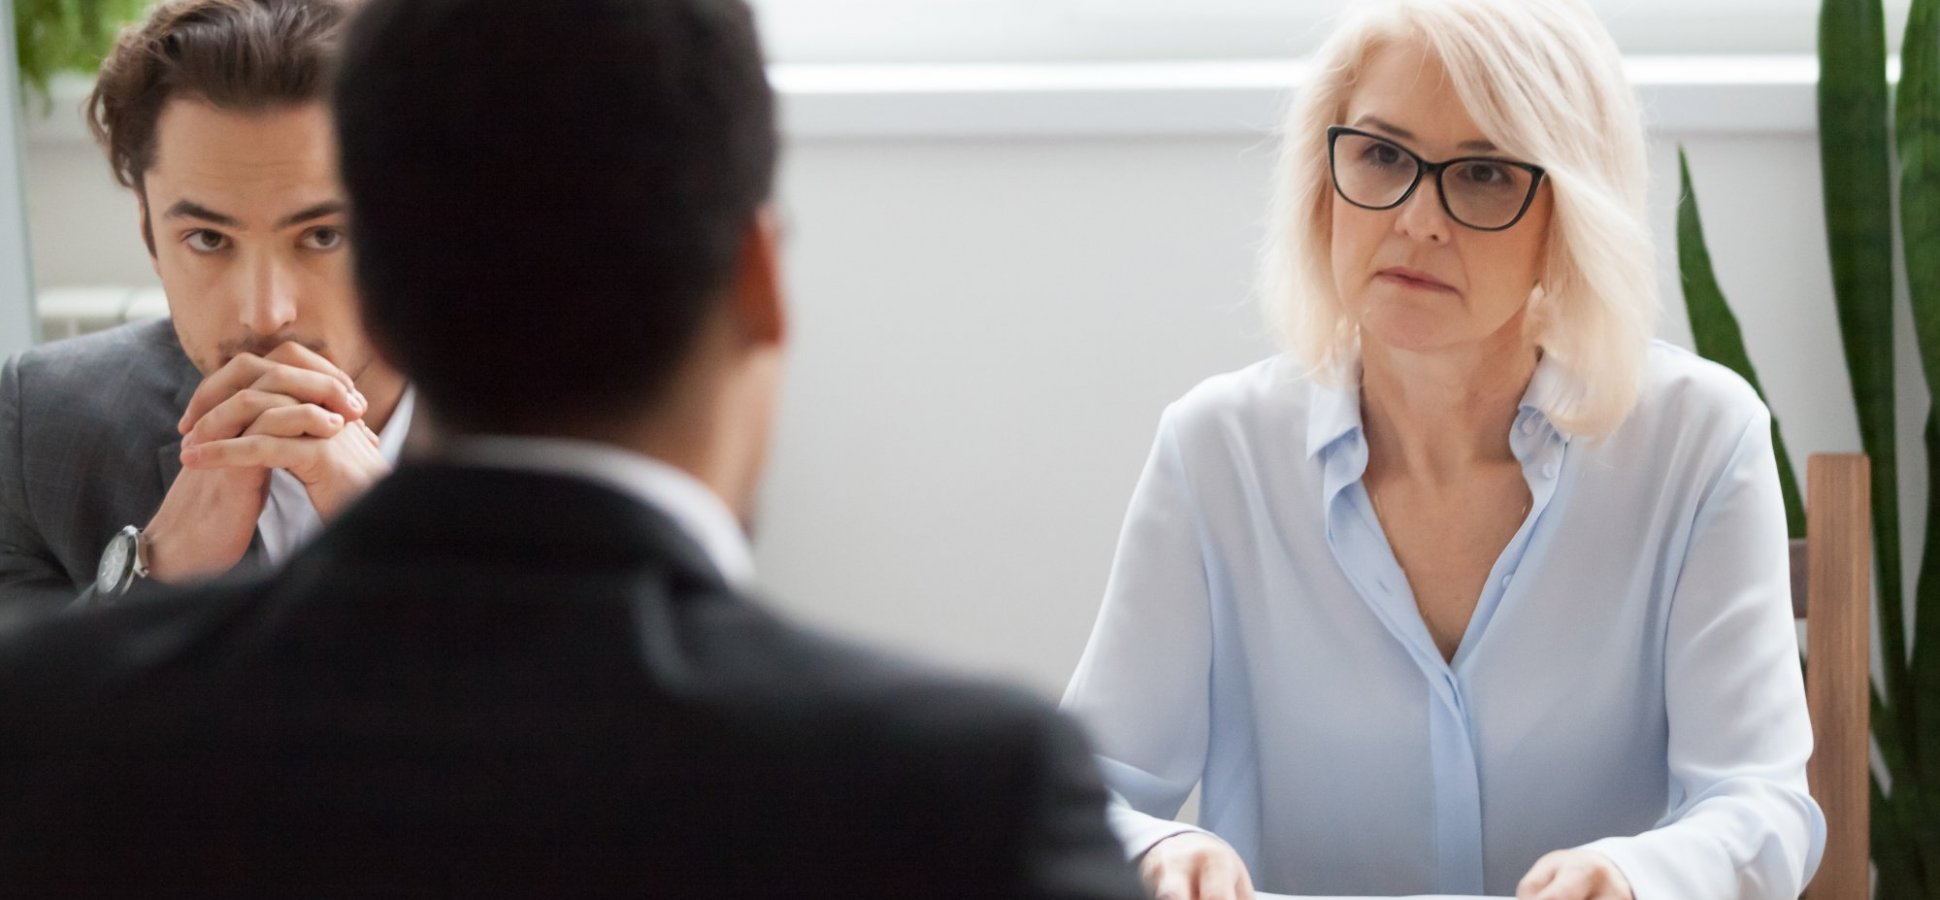 Why Companies Require Cross-Disciplinary Interviews (and Questions You Can Prepare)